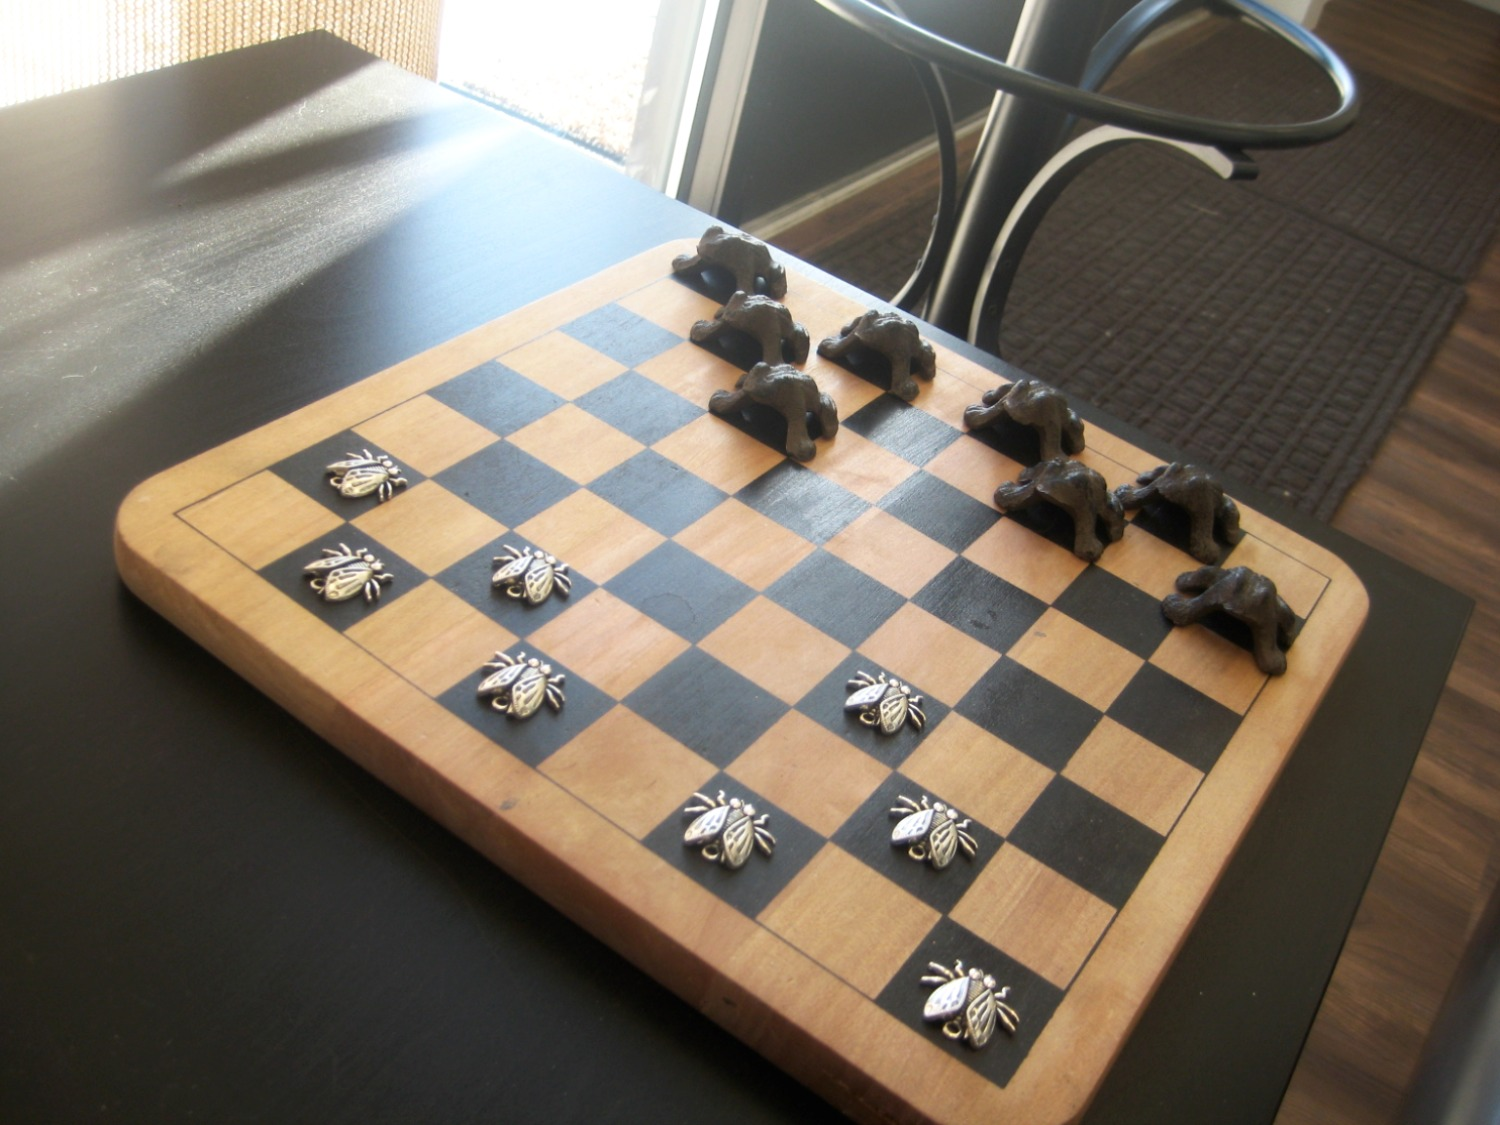 Checkers in lobby